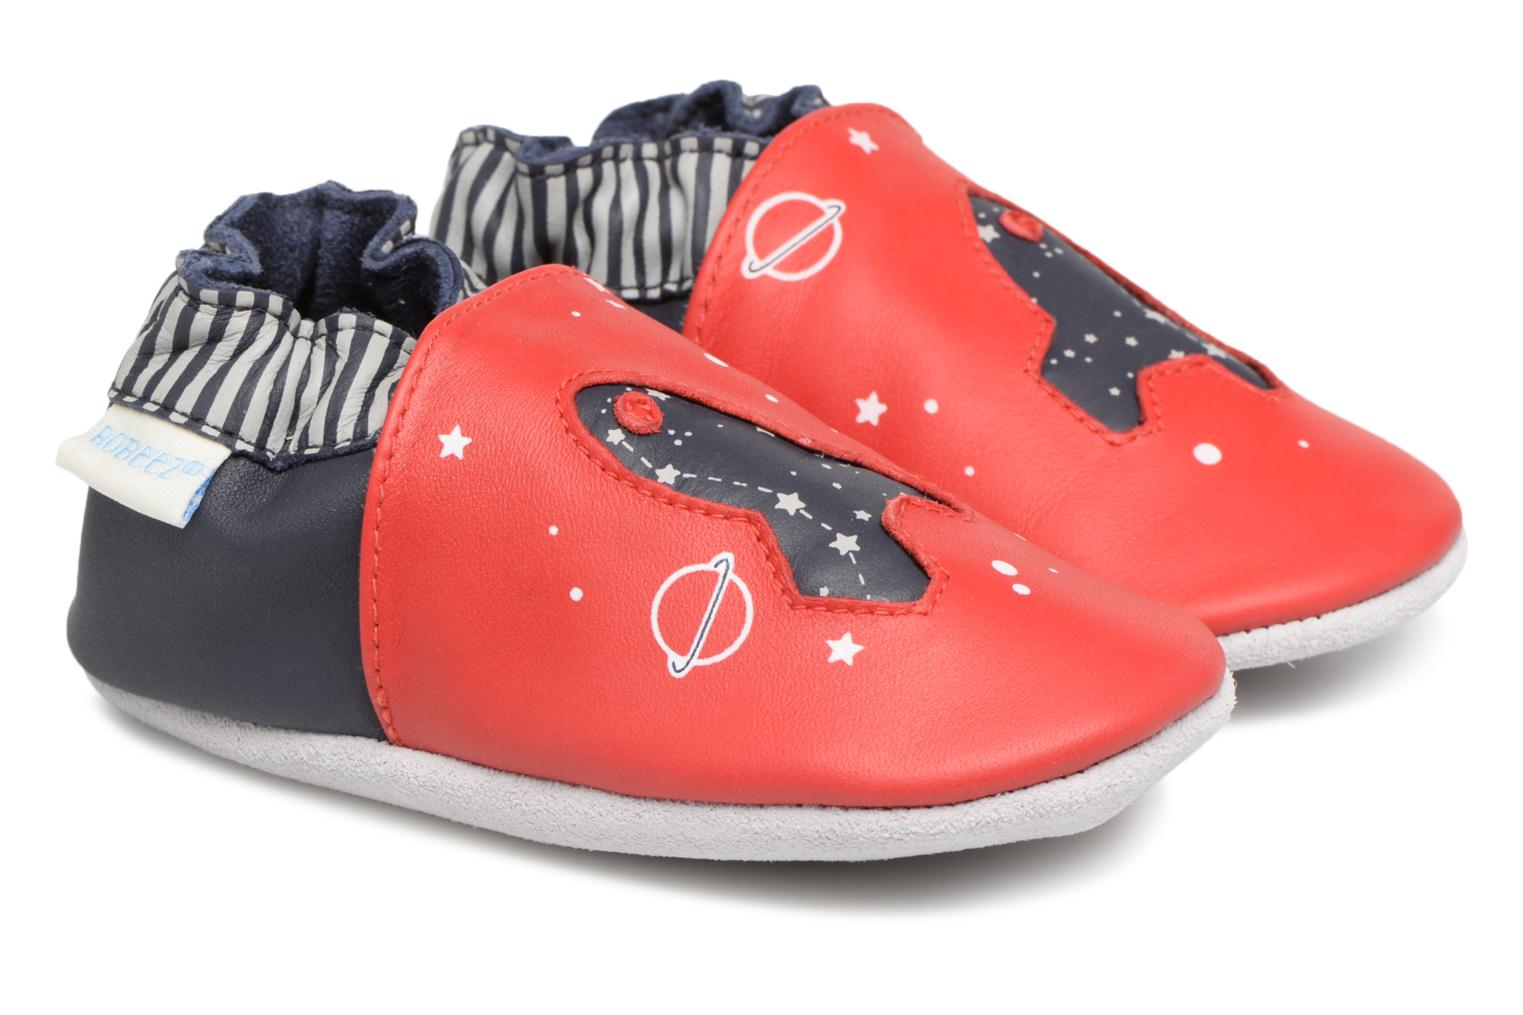 Pantofole Bambino Planet Travel